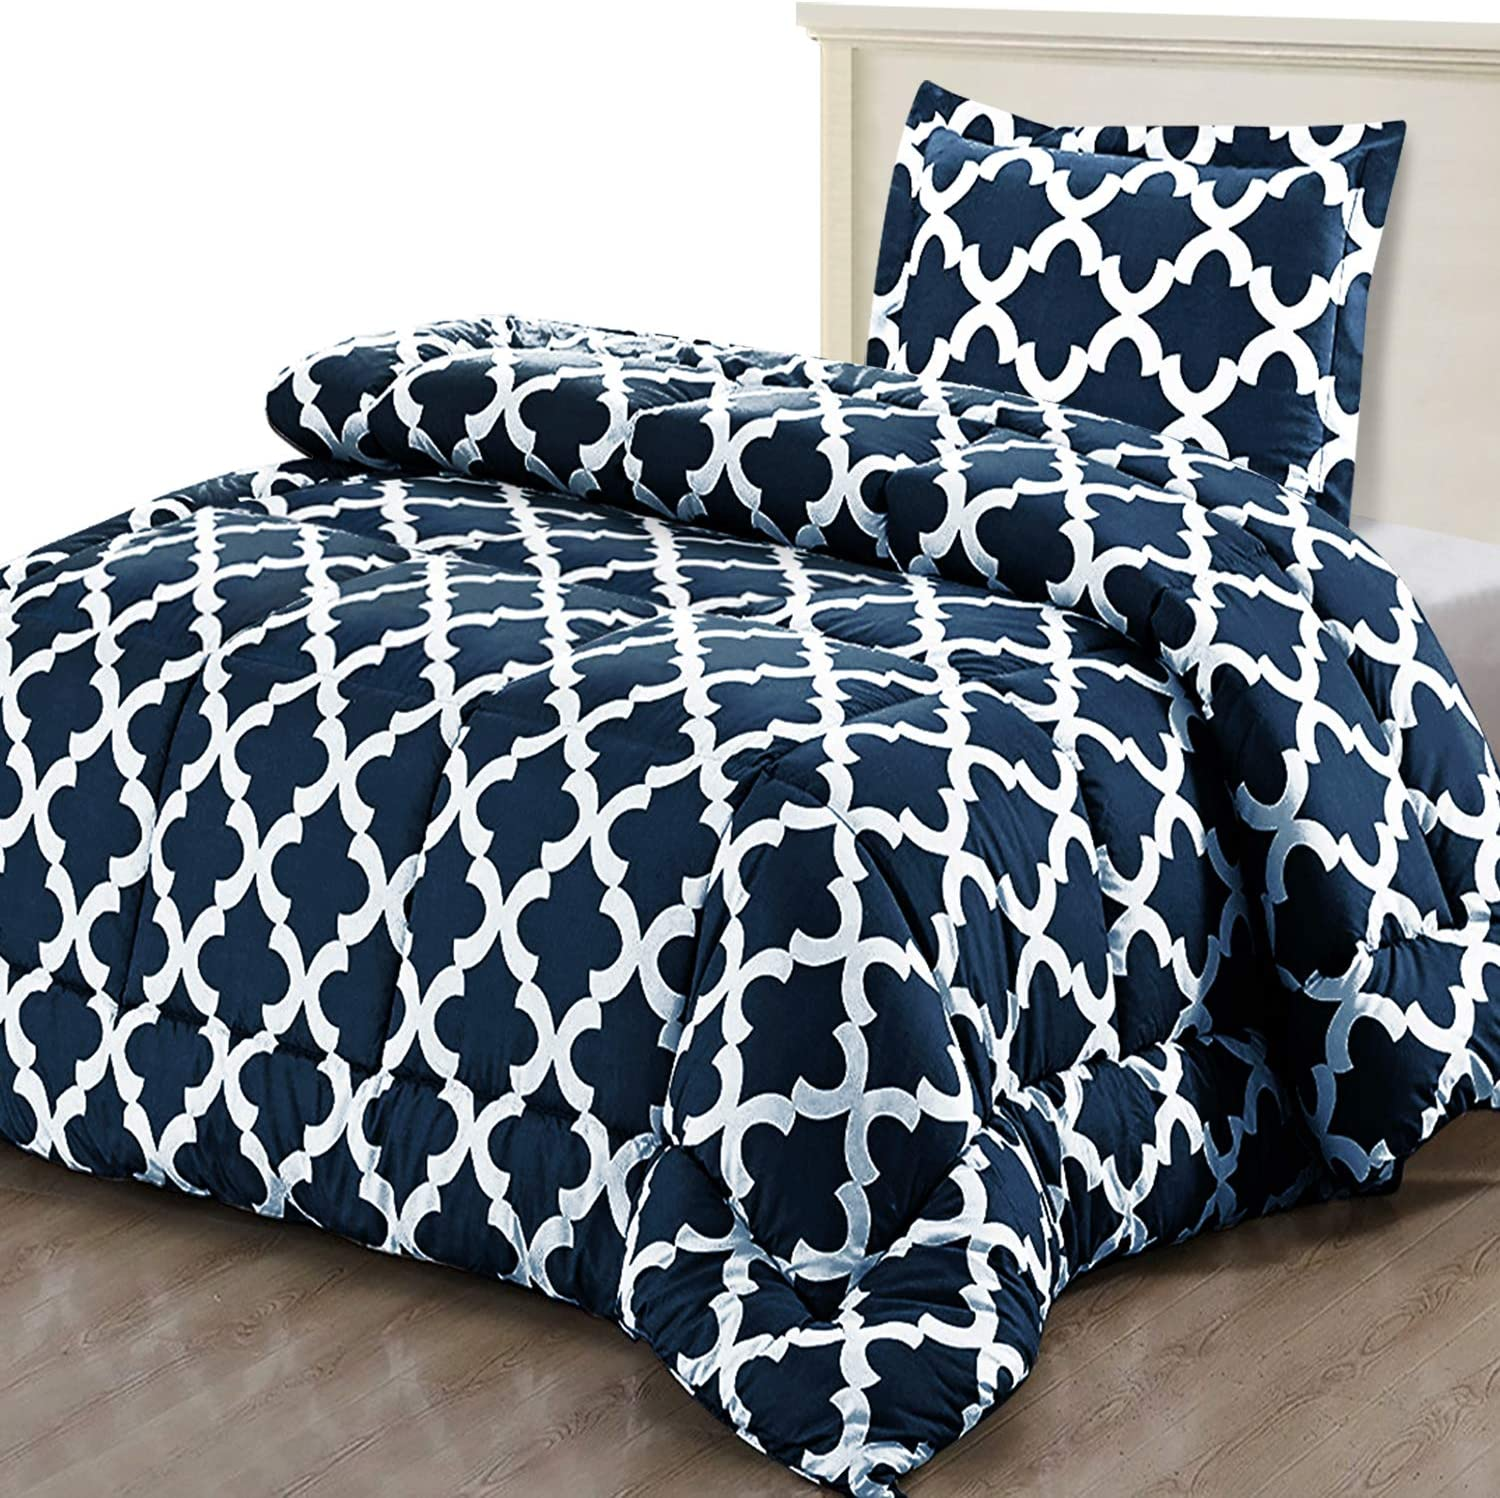 utopia bedding printed comforter set twin twin xl navy with 1 pillow sham luxurious brushed microfiber down alternative comforter soft and